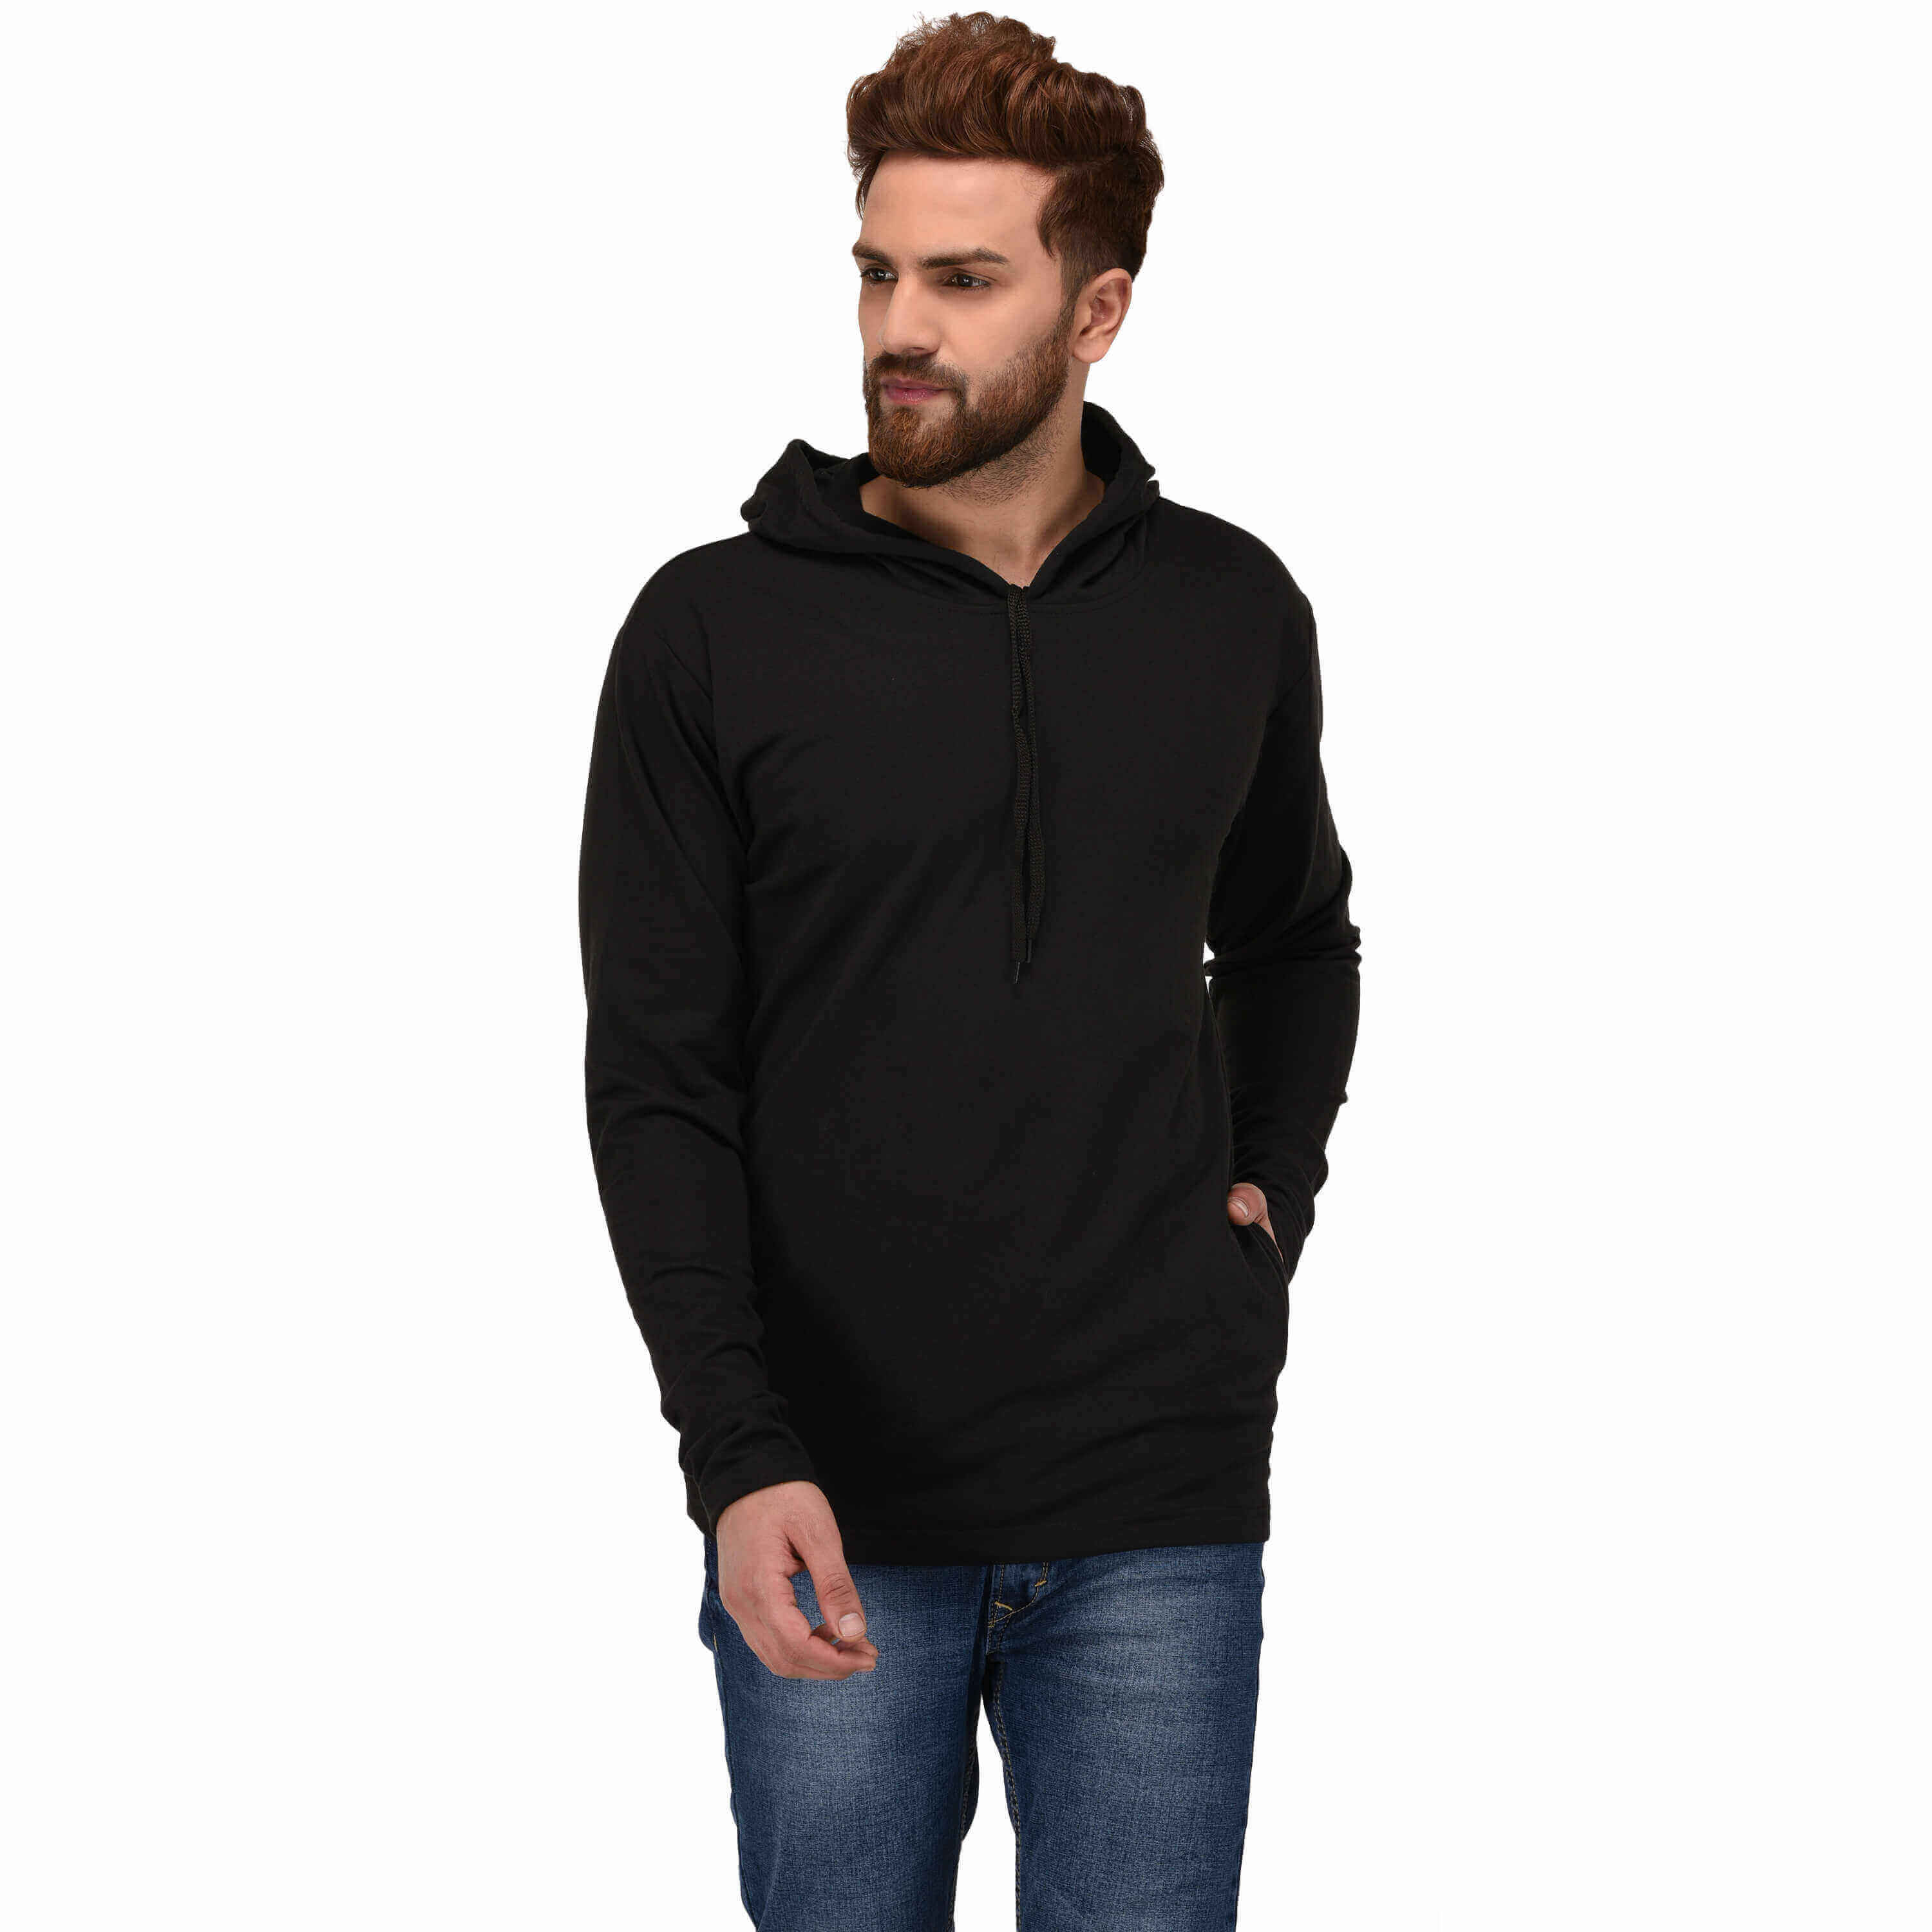 Sports Hoodies Manufacturers in Estonia